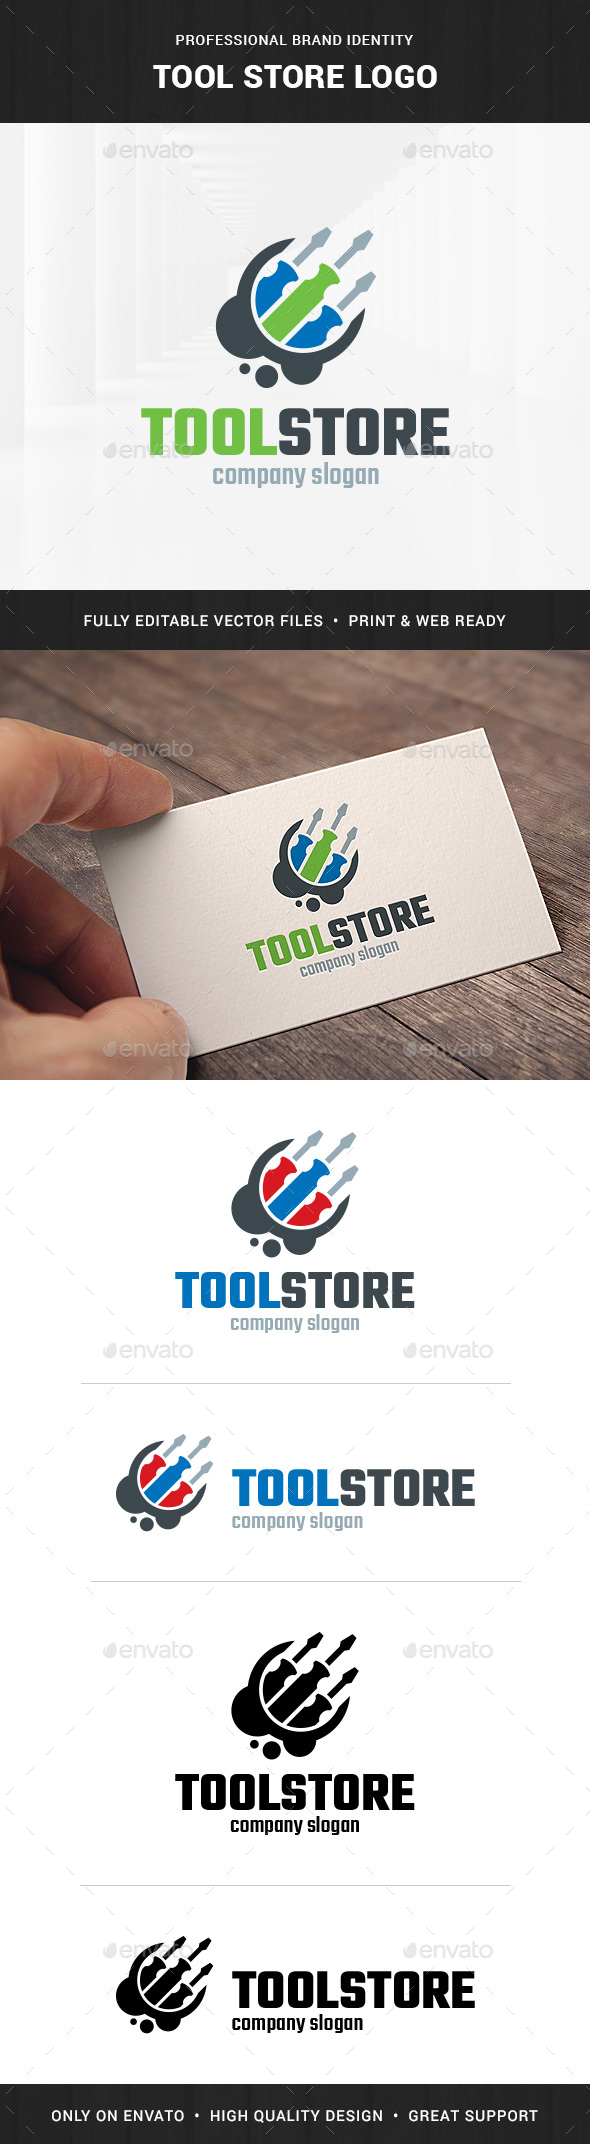 Tool Store Logo Template - Objects Logo Templates